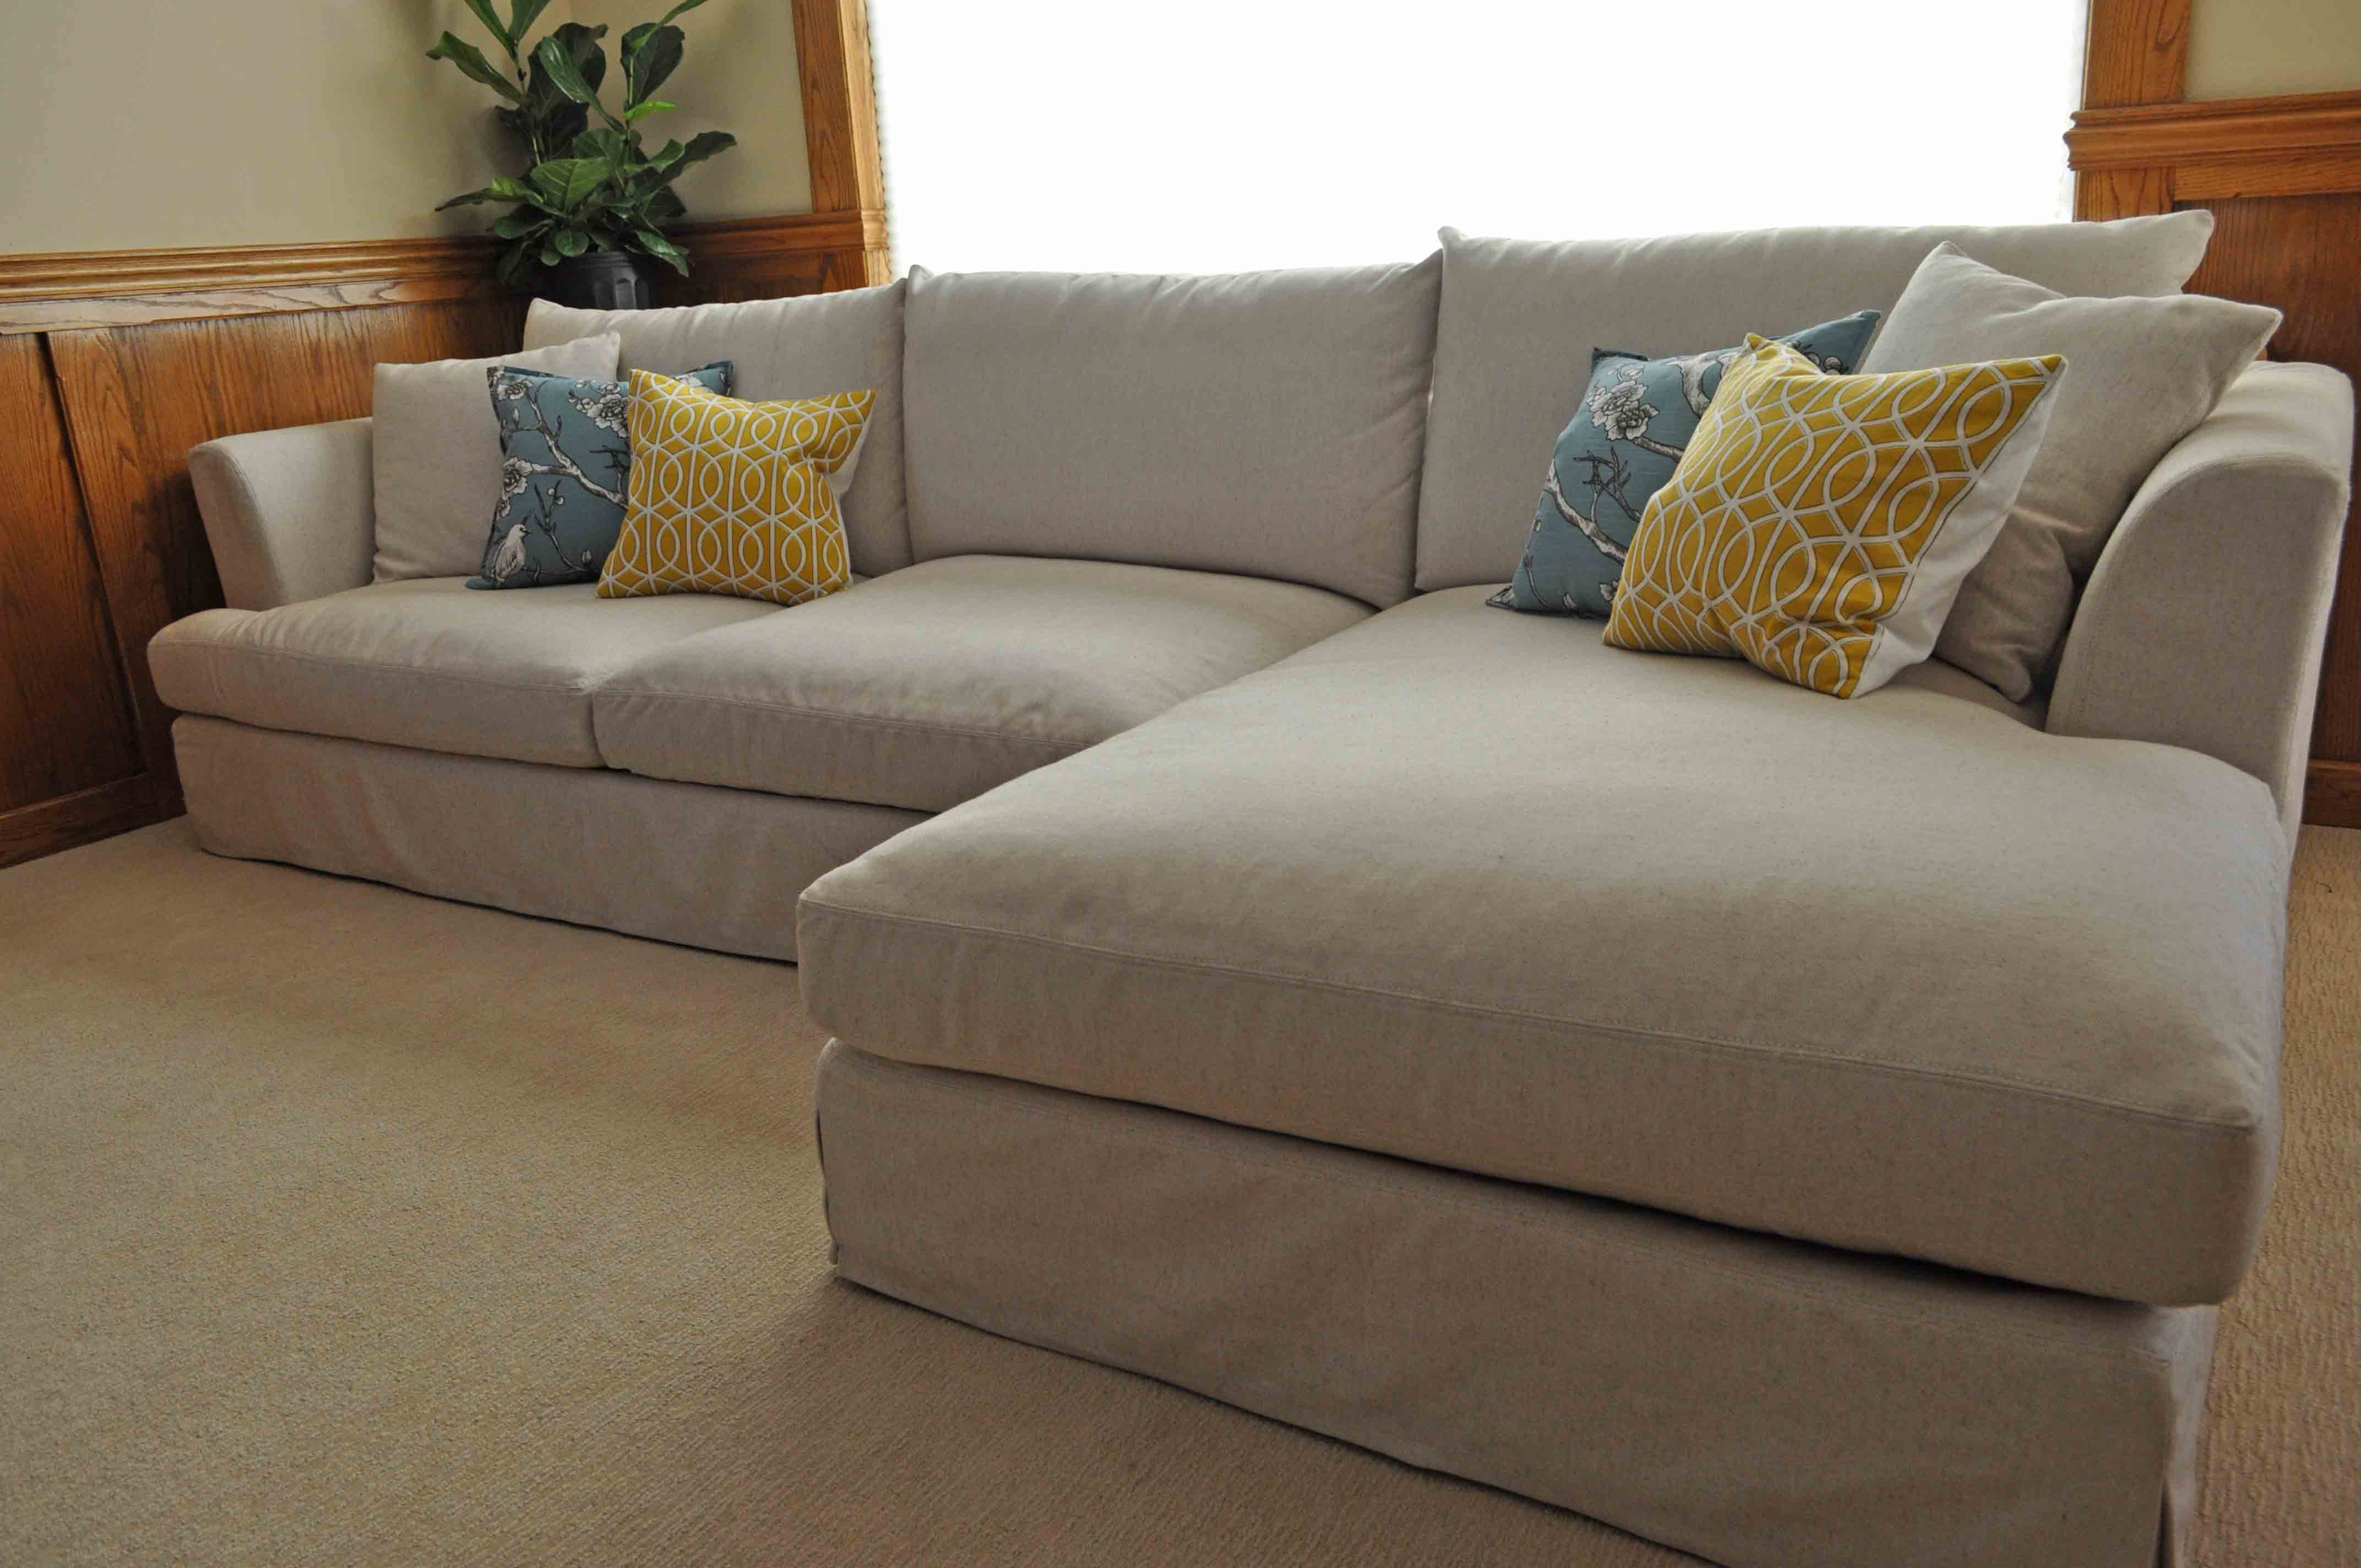 Best Big Comfy Sofas Gallery Design Ideas Collections Regarding Comfortable Sofas And Chairs (Photo 7 of 15)